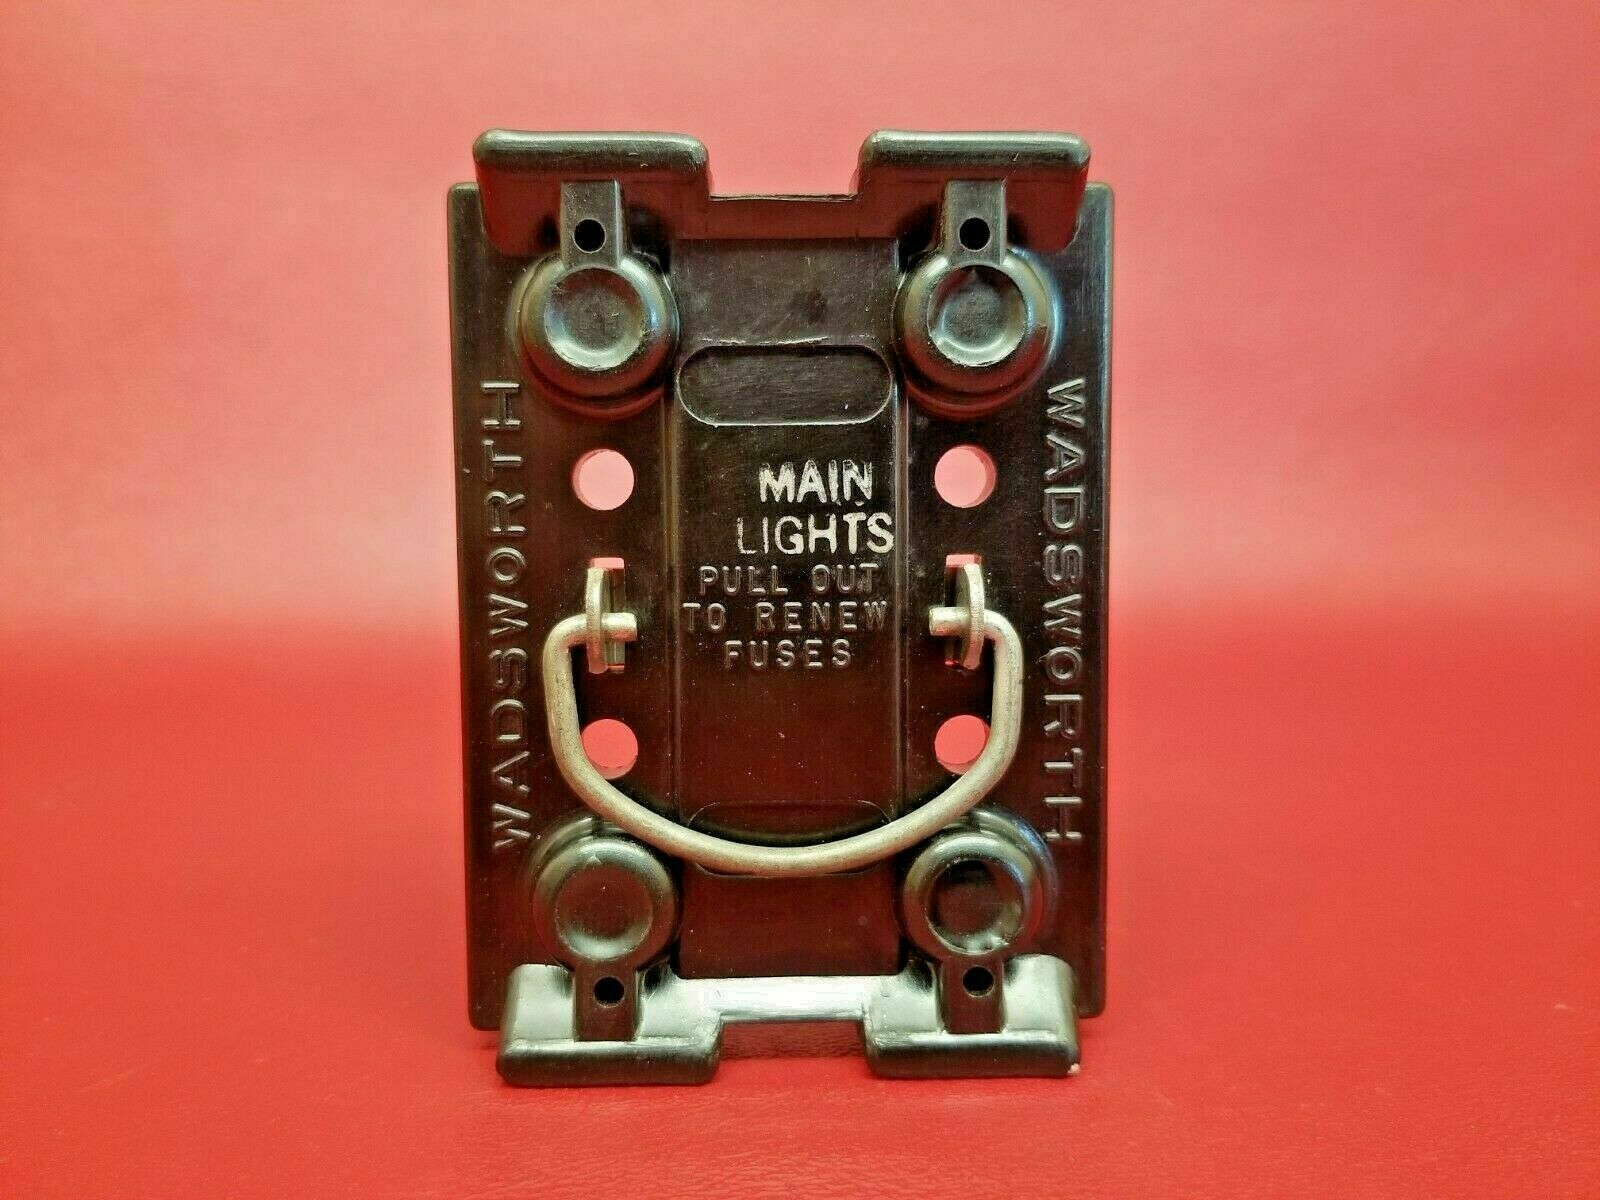 [DIAGRAM_4PO]  VINTAGE Wadsworth 100 amp Fuse Holder Pull Out and Block - MAIN WITH FUSES  for sale online | eBay | Vintage Wadsworth Fuse Box |  | eBay